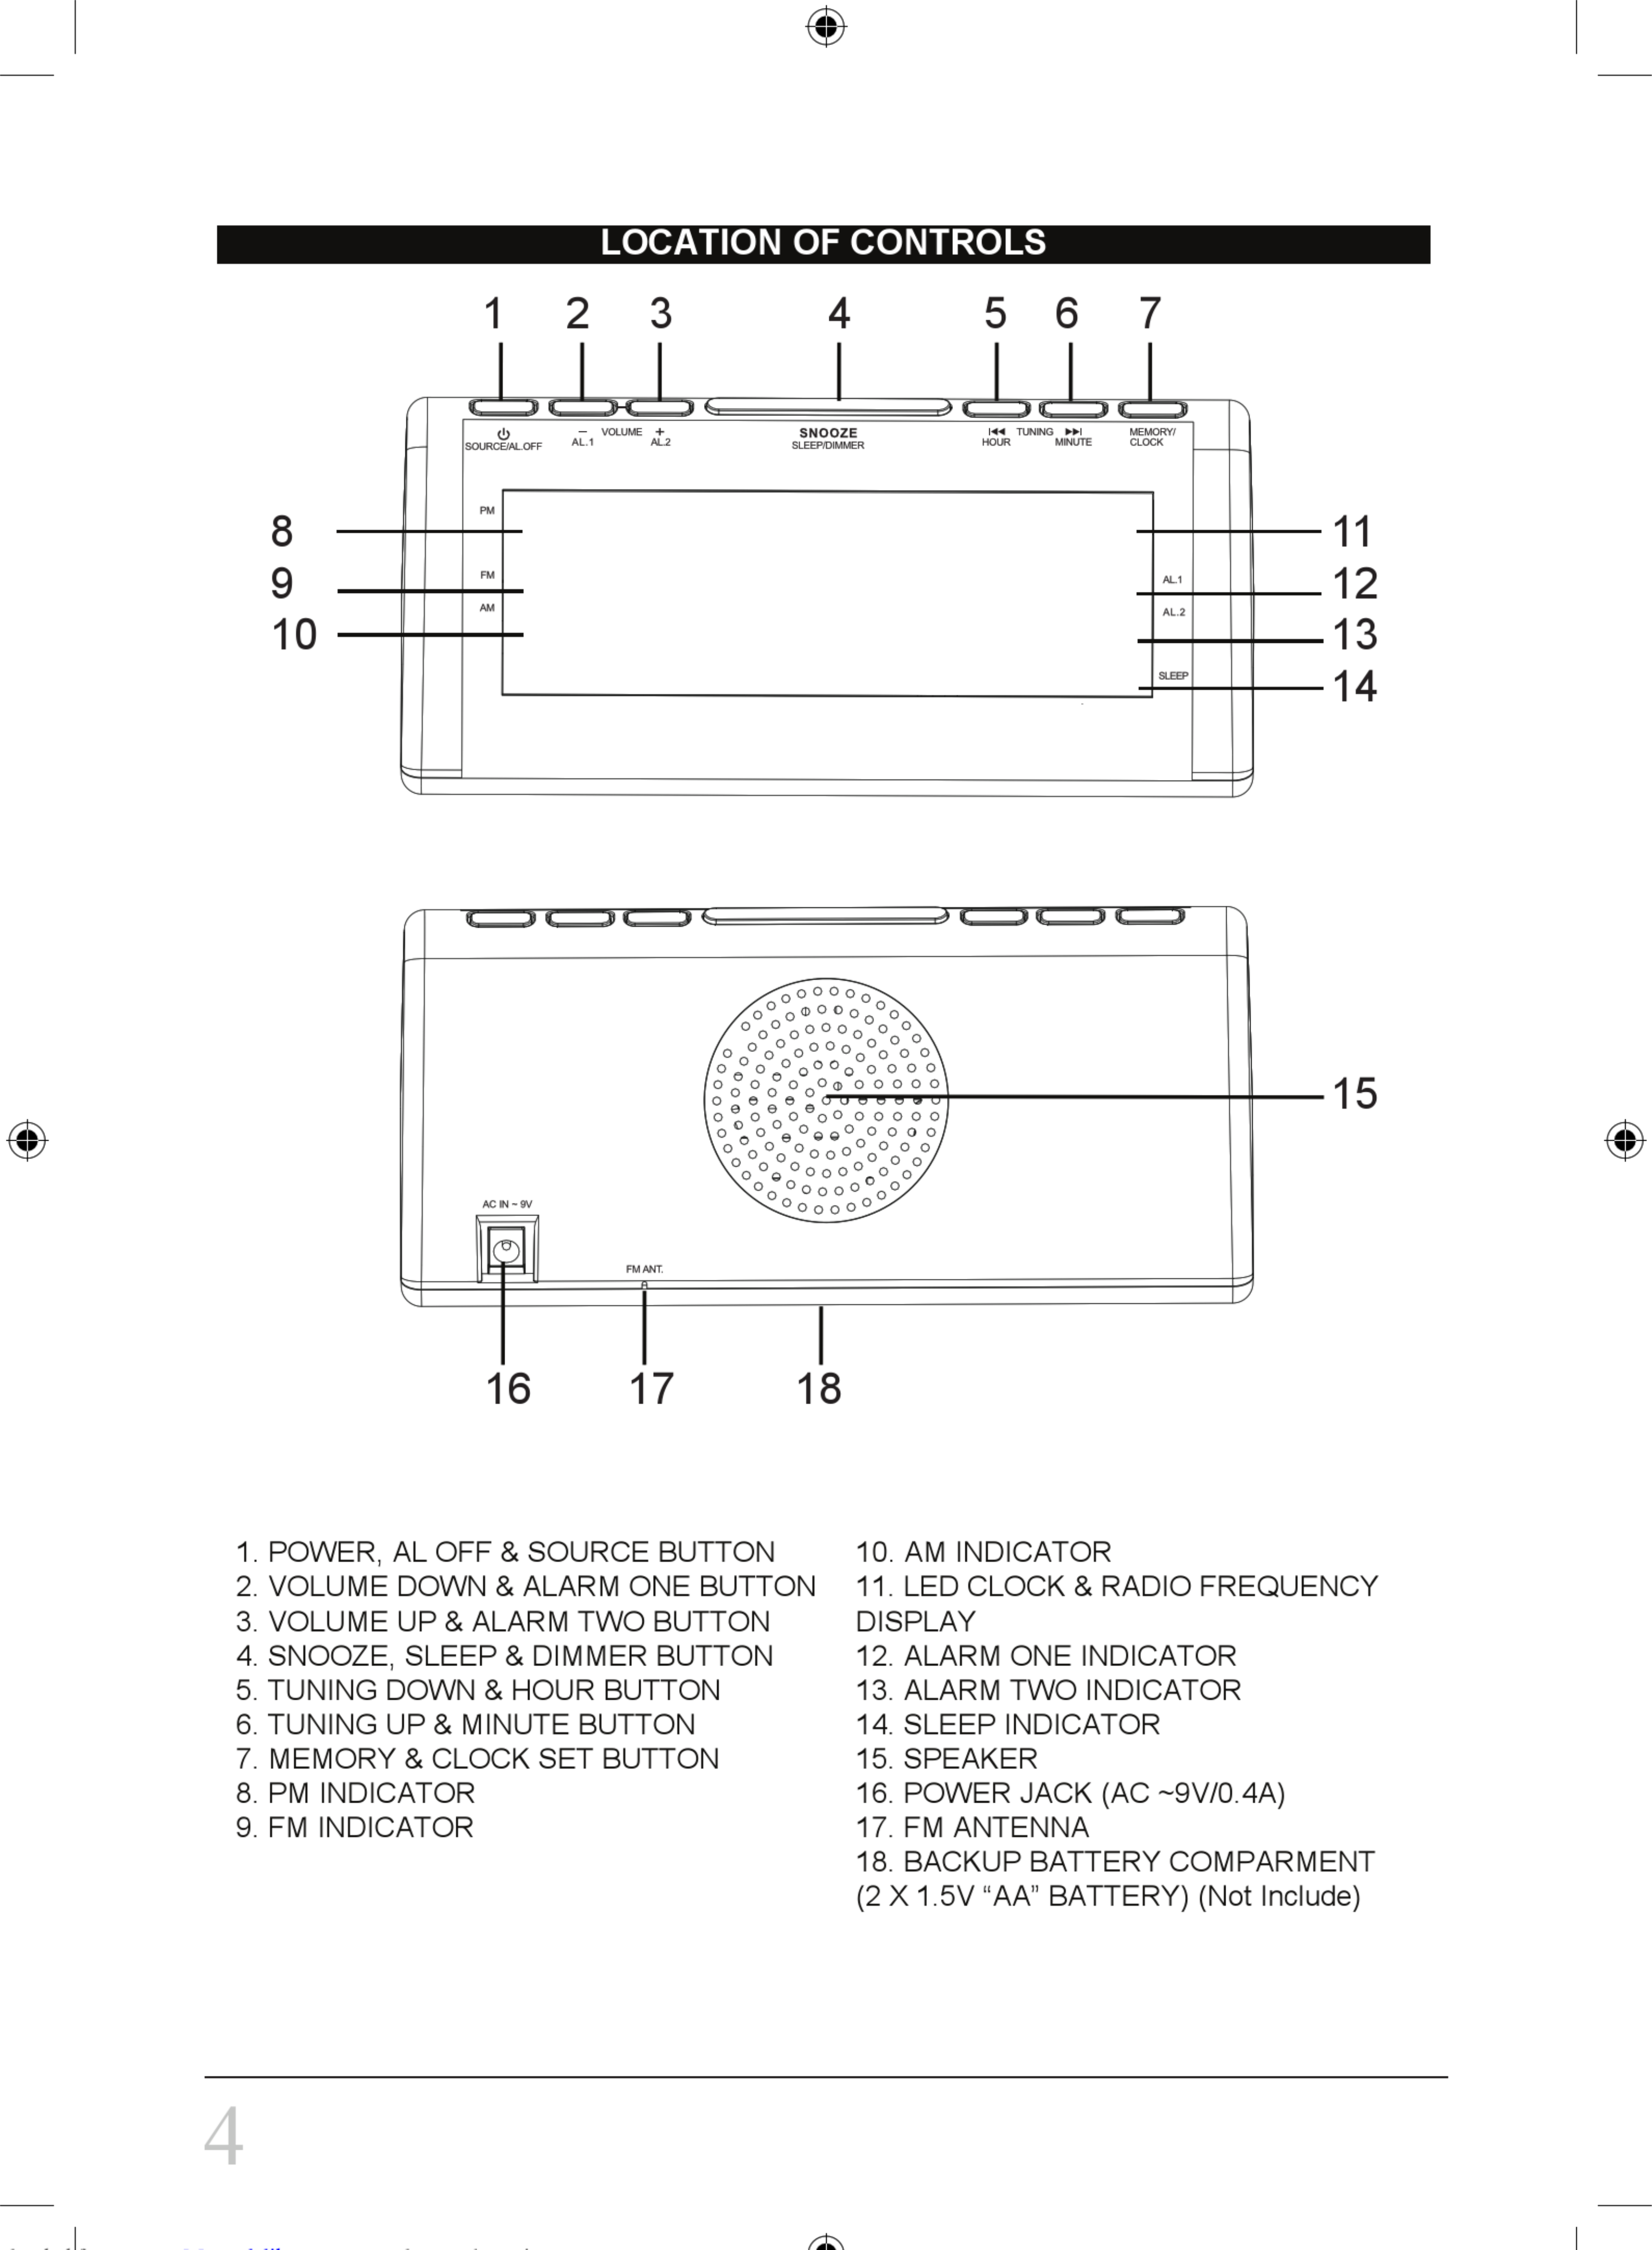 Sylvania Scr1206b Pl Instruction Manual 1003224 User Up Down Timer For A Power Antenna Page 4 Of 8